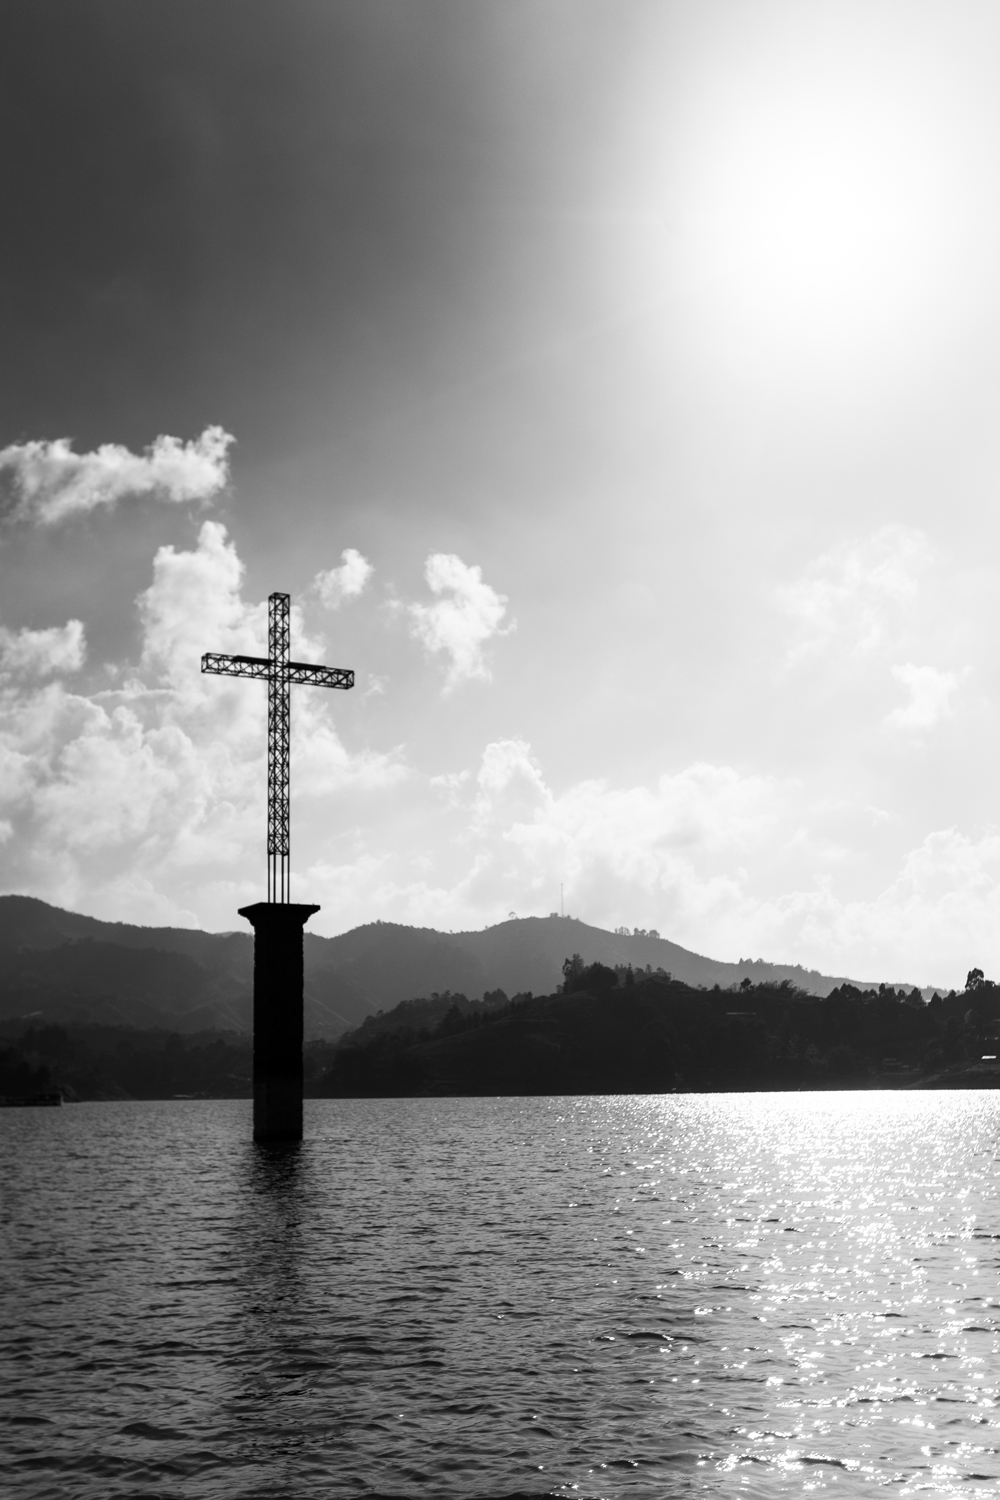 This part of the lake was actually made over a city.  The town was evacuated and flooded to form the lake and give water to neighboring cities.  This cross on top of the church is all that's visible above water.  Sony A7II, Canon 16-35mm f/2.8L II @35mm (iso100, f/5.6, 1/4000s)